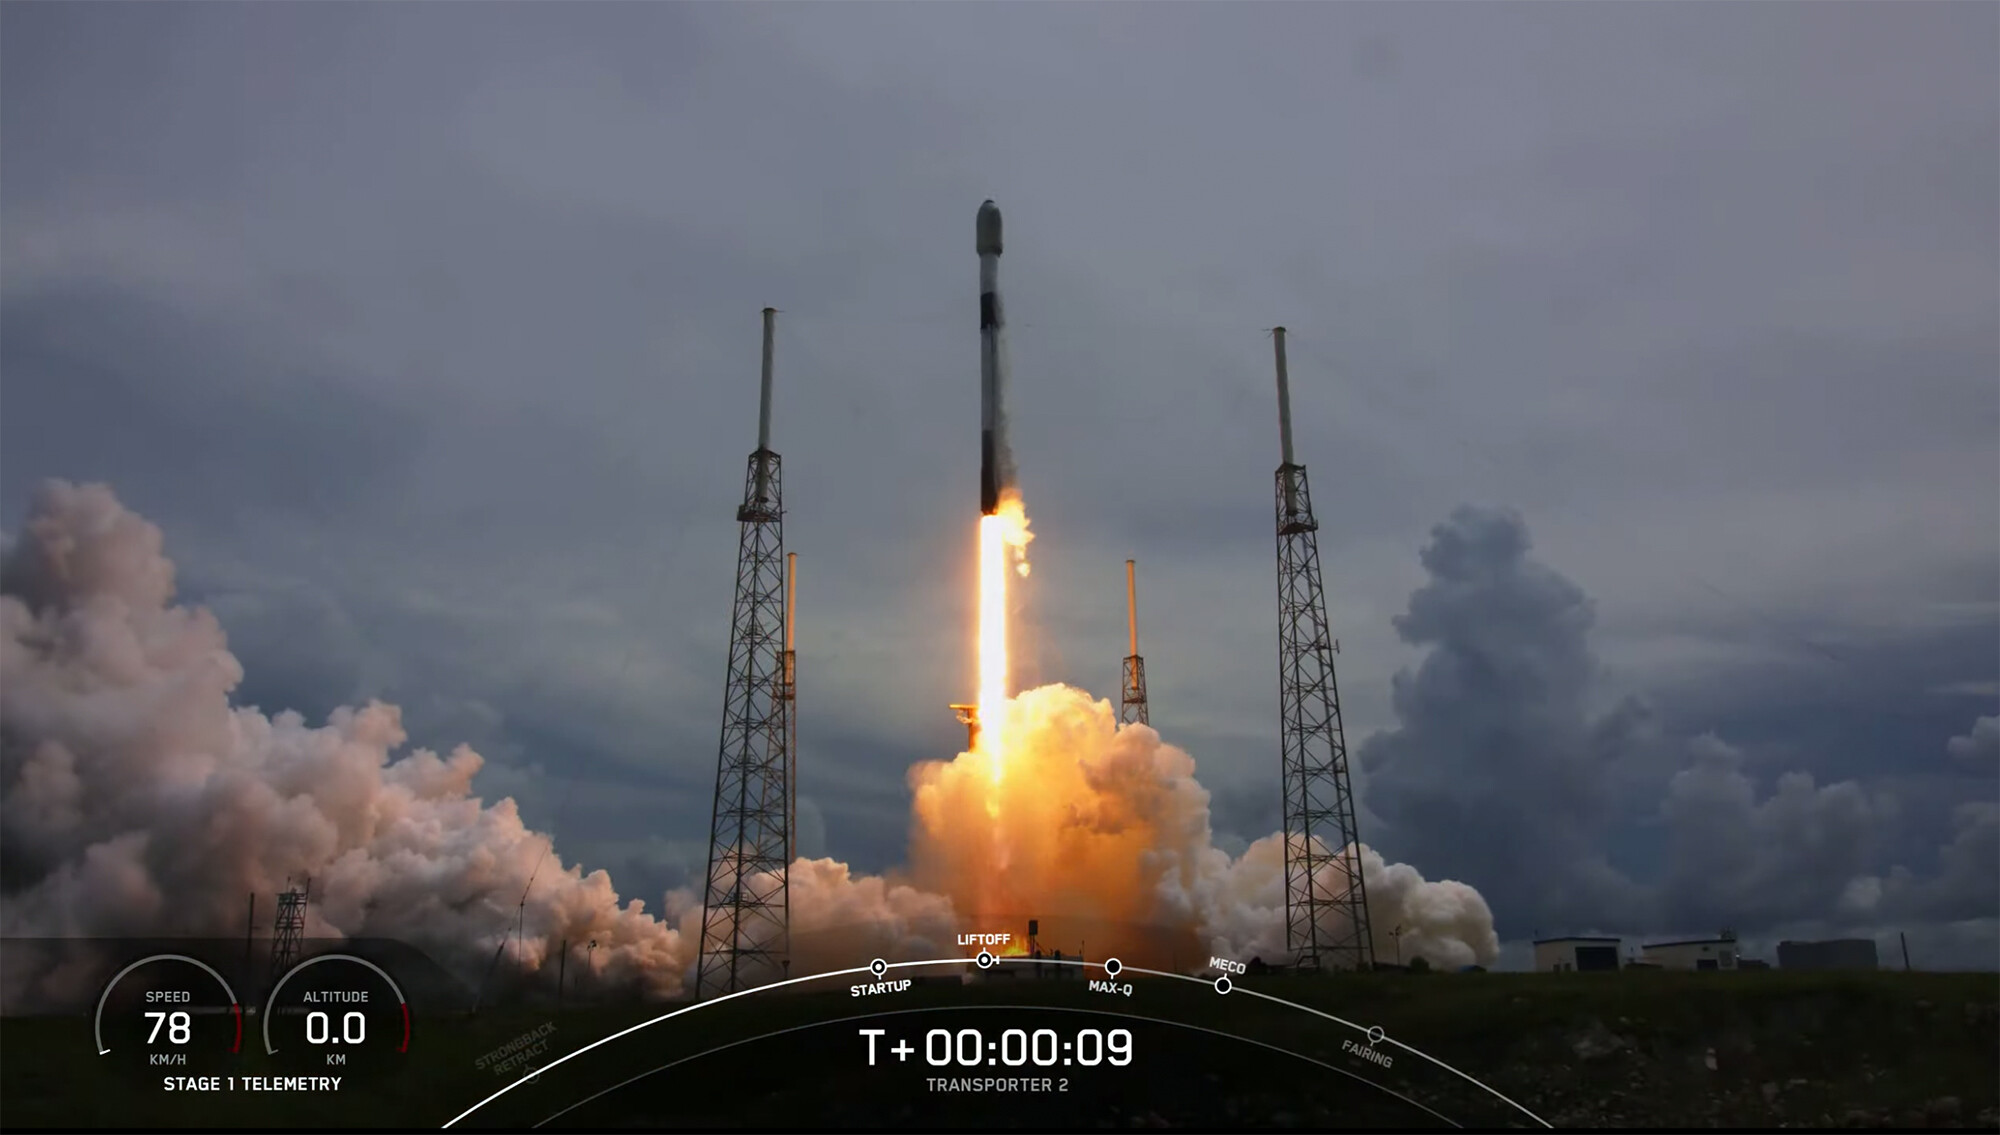 <i>SpaceX</i><br/>A SpaceX Falcon 9 rocket takes off from Cape Canaveral Space Force Station with 88 satellites on board.